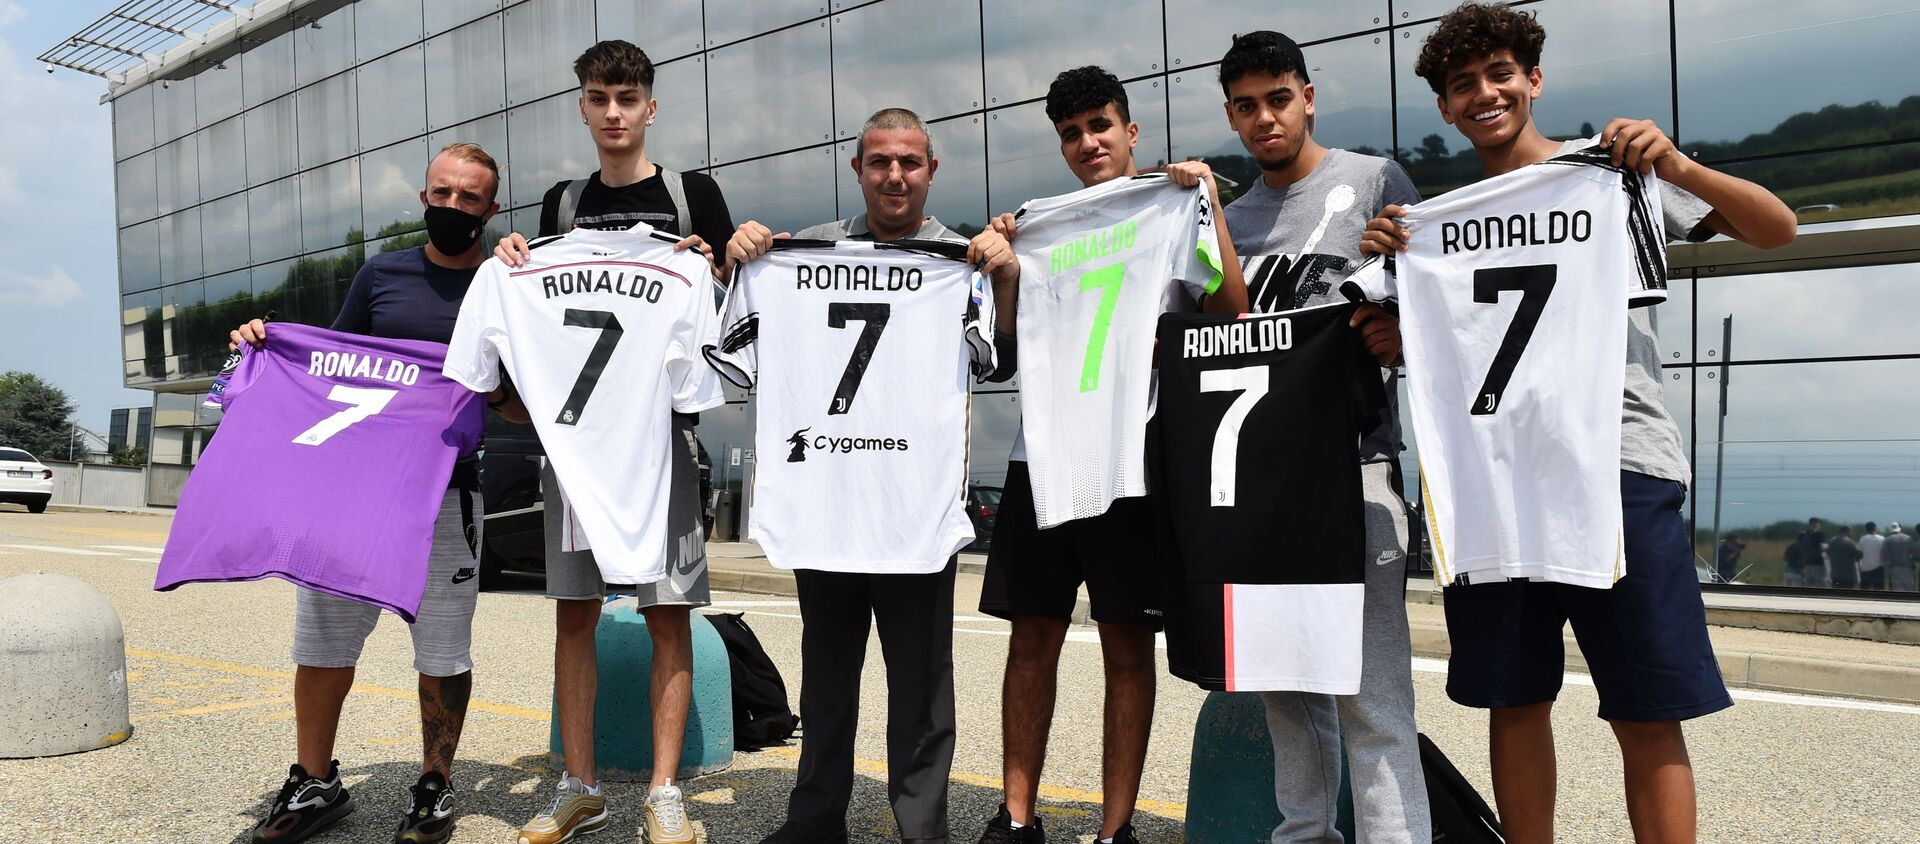 Turin-Caselle Airport, Turin, Italy - July 25, 2021 Juventus' fans display shirts with Cristiano Ronaldo's name outside Turin-Caselle Airport before he arrives - Sputnik International, 1920, 25.07.2021